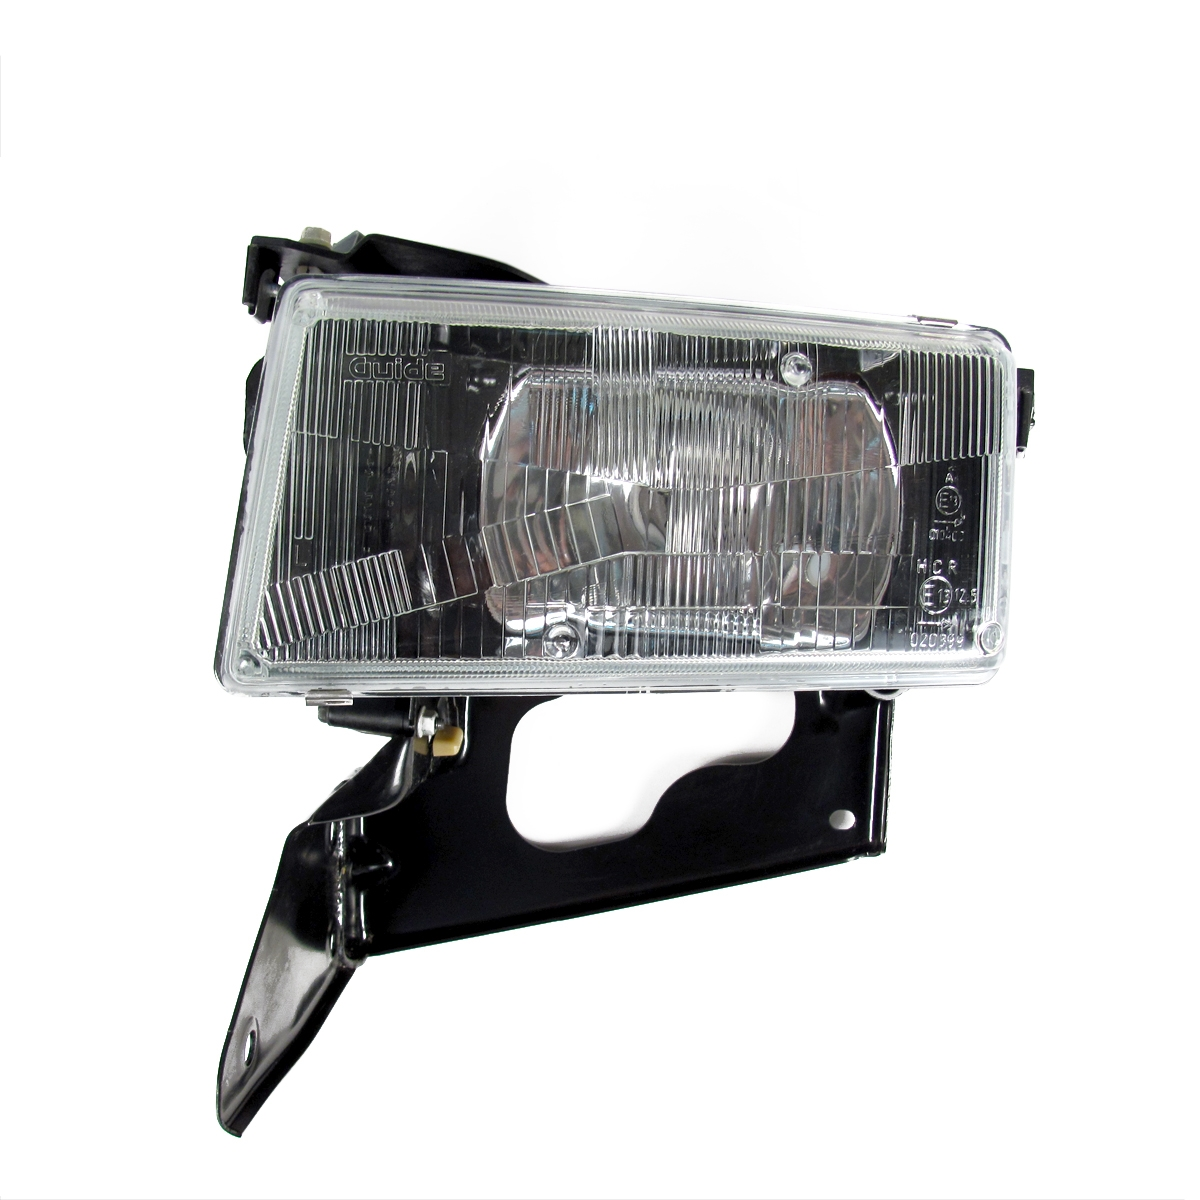 Driver Side (LH) Headlamp Assembly with Actuator Motor - Japan and UK Left  Hand Rule of Road T85 GM Part nos  10351405, 10320755